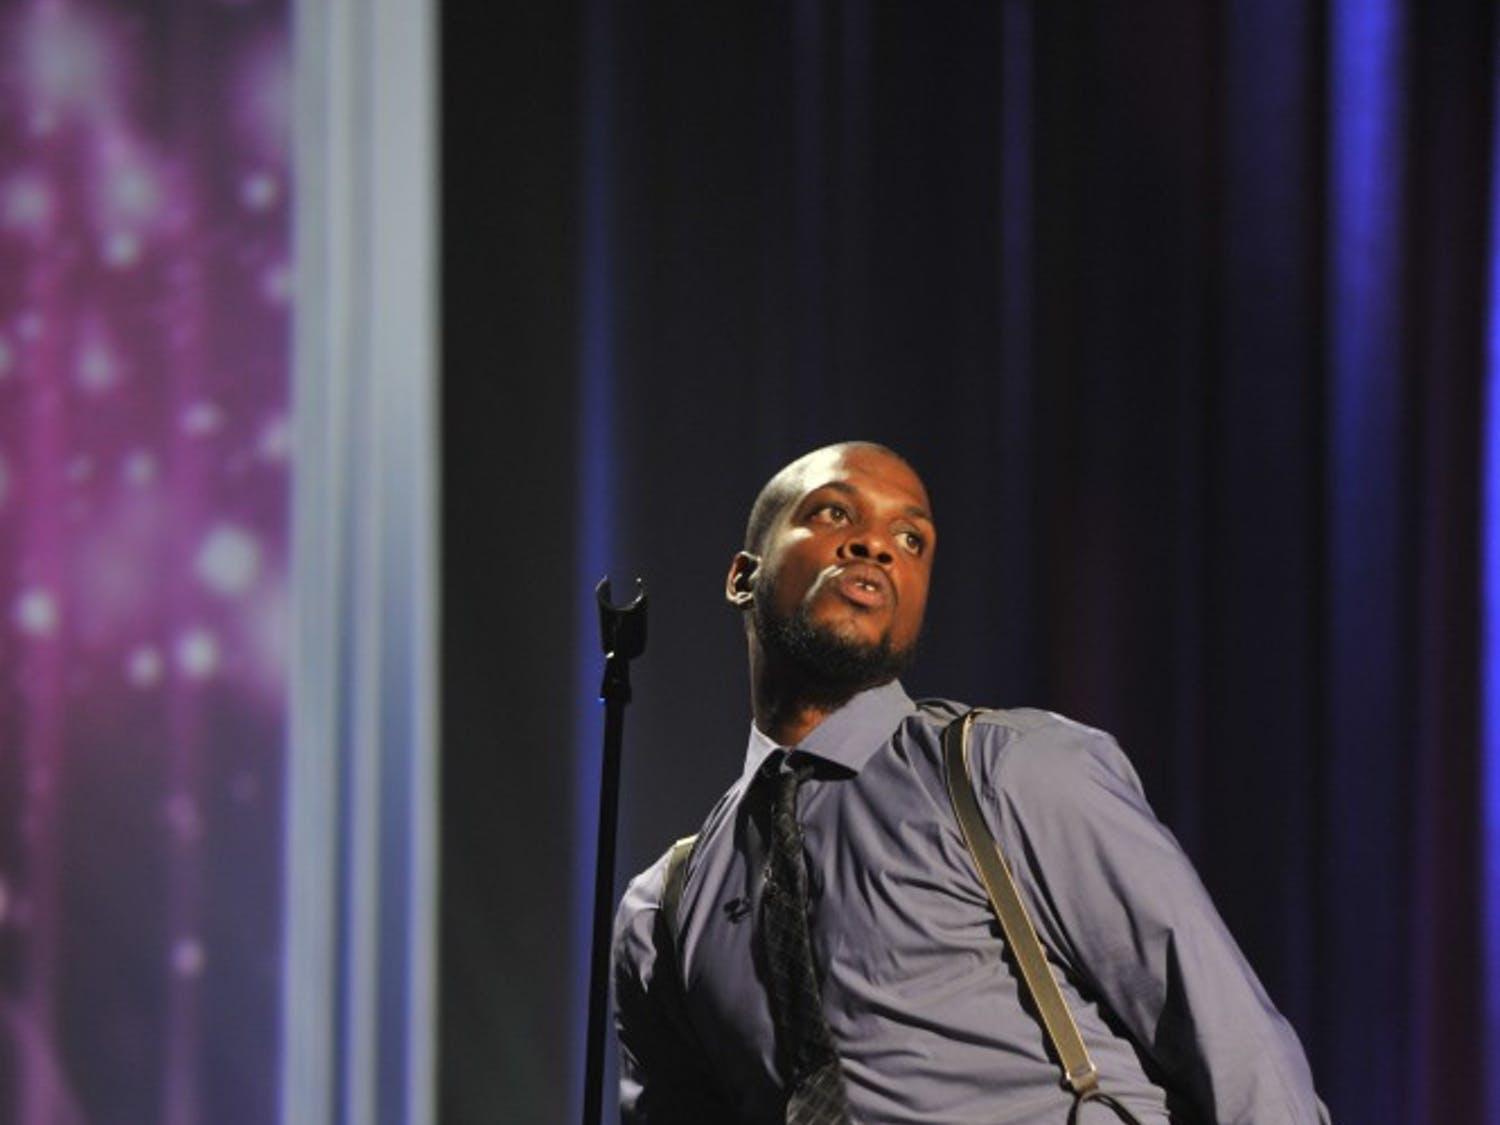 Siddiq has two more shows in Madisontonight at8:30 p.m and 10:30 p.m.